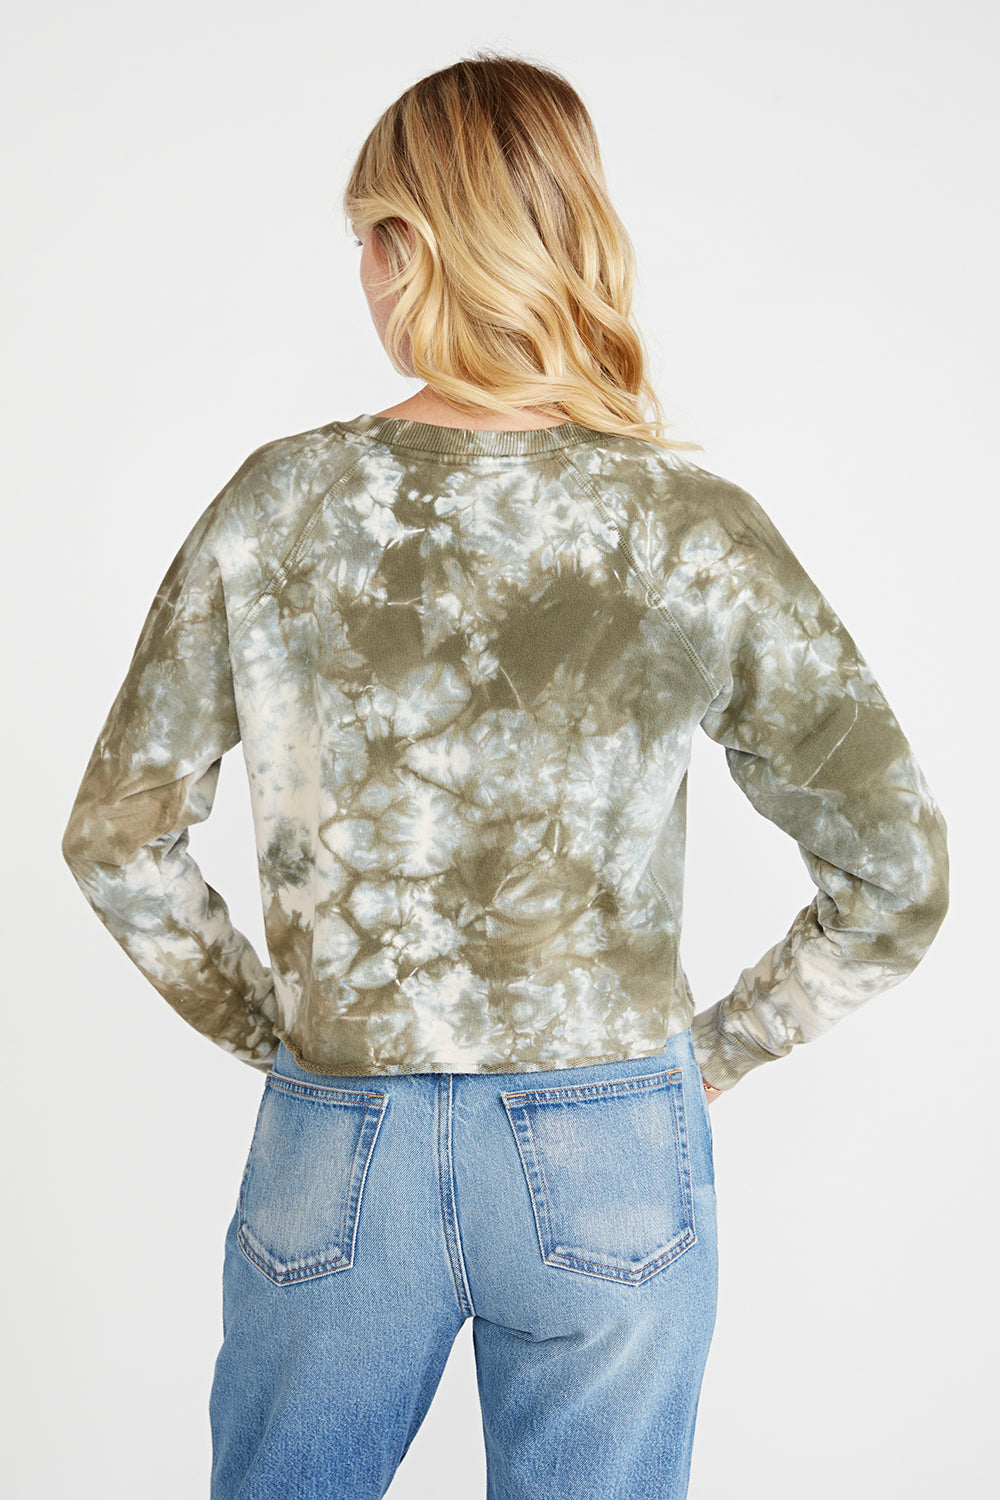 Yara Sweatshirt - Surplus Tie Dye